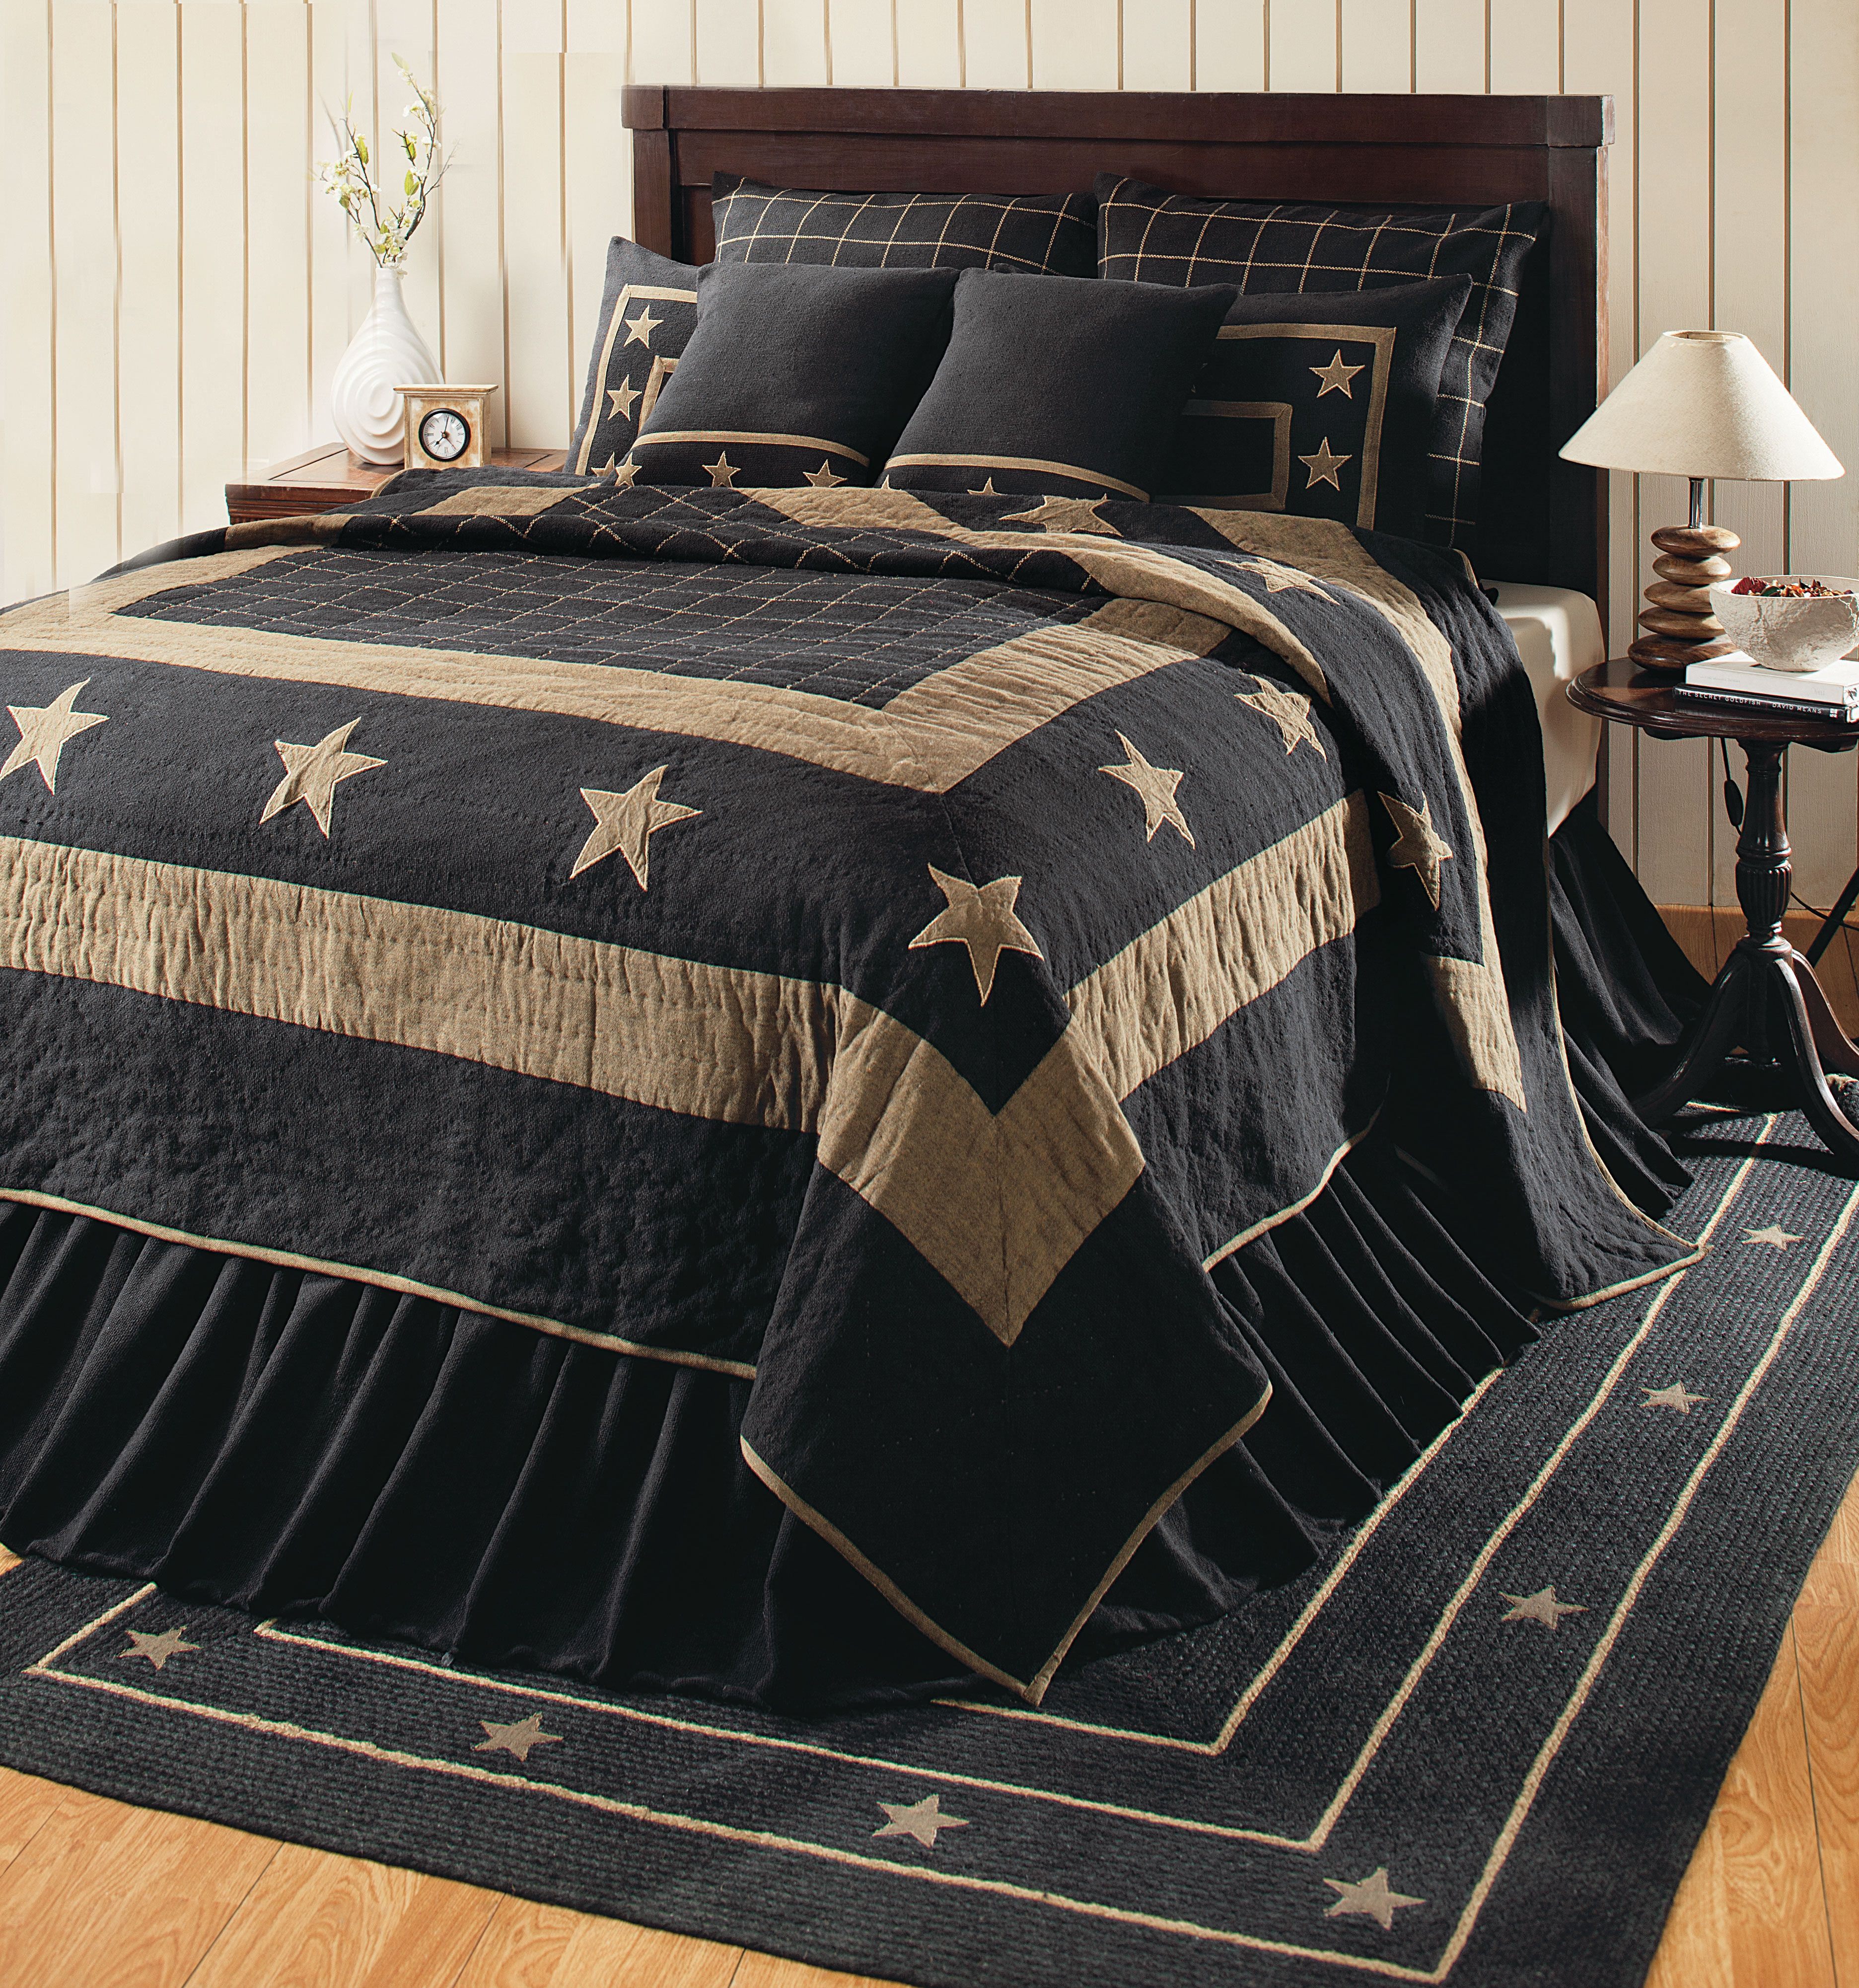 This 100 Cotton Burlap Black Star Bedding Is Available As Quilts